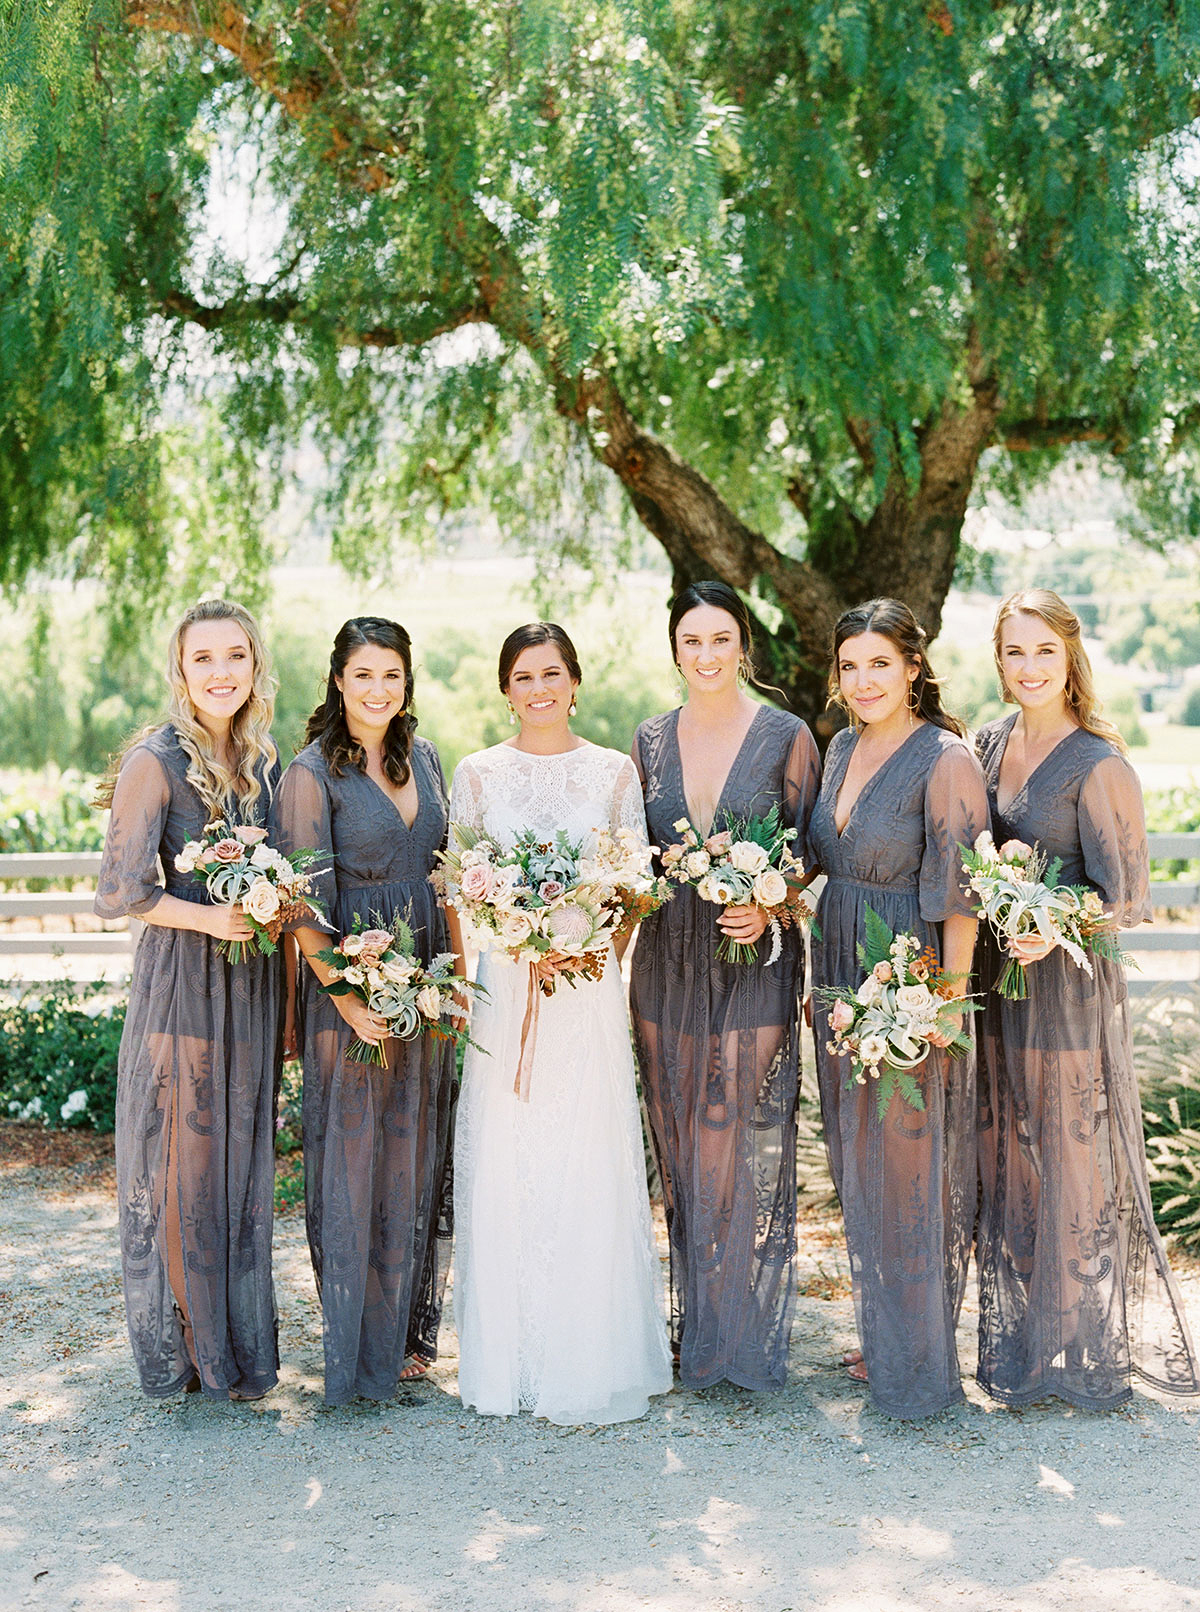 Can Bridesmaids Wear Long Sleeved Dresses For A Summer Wedding